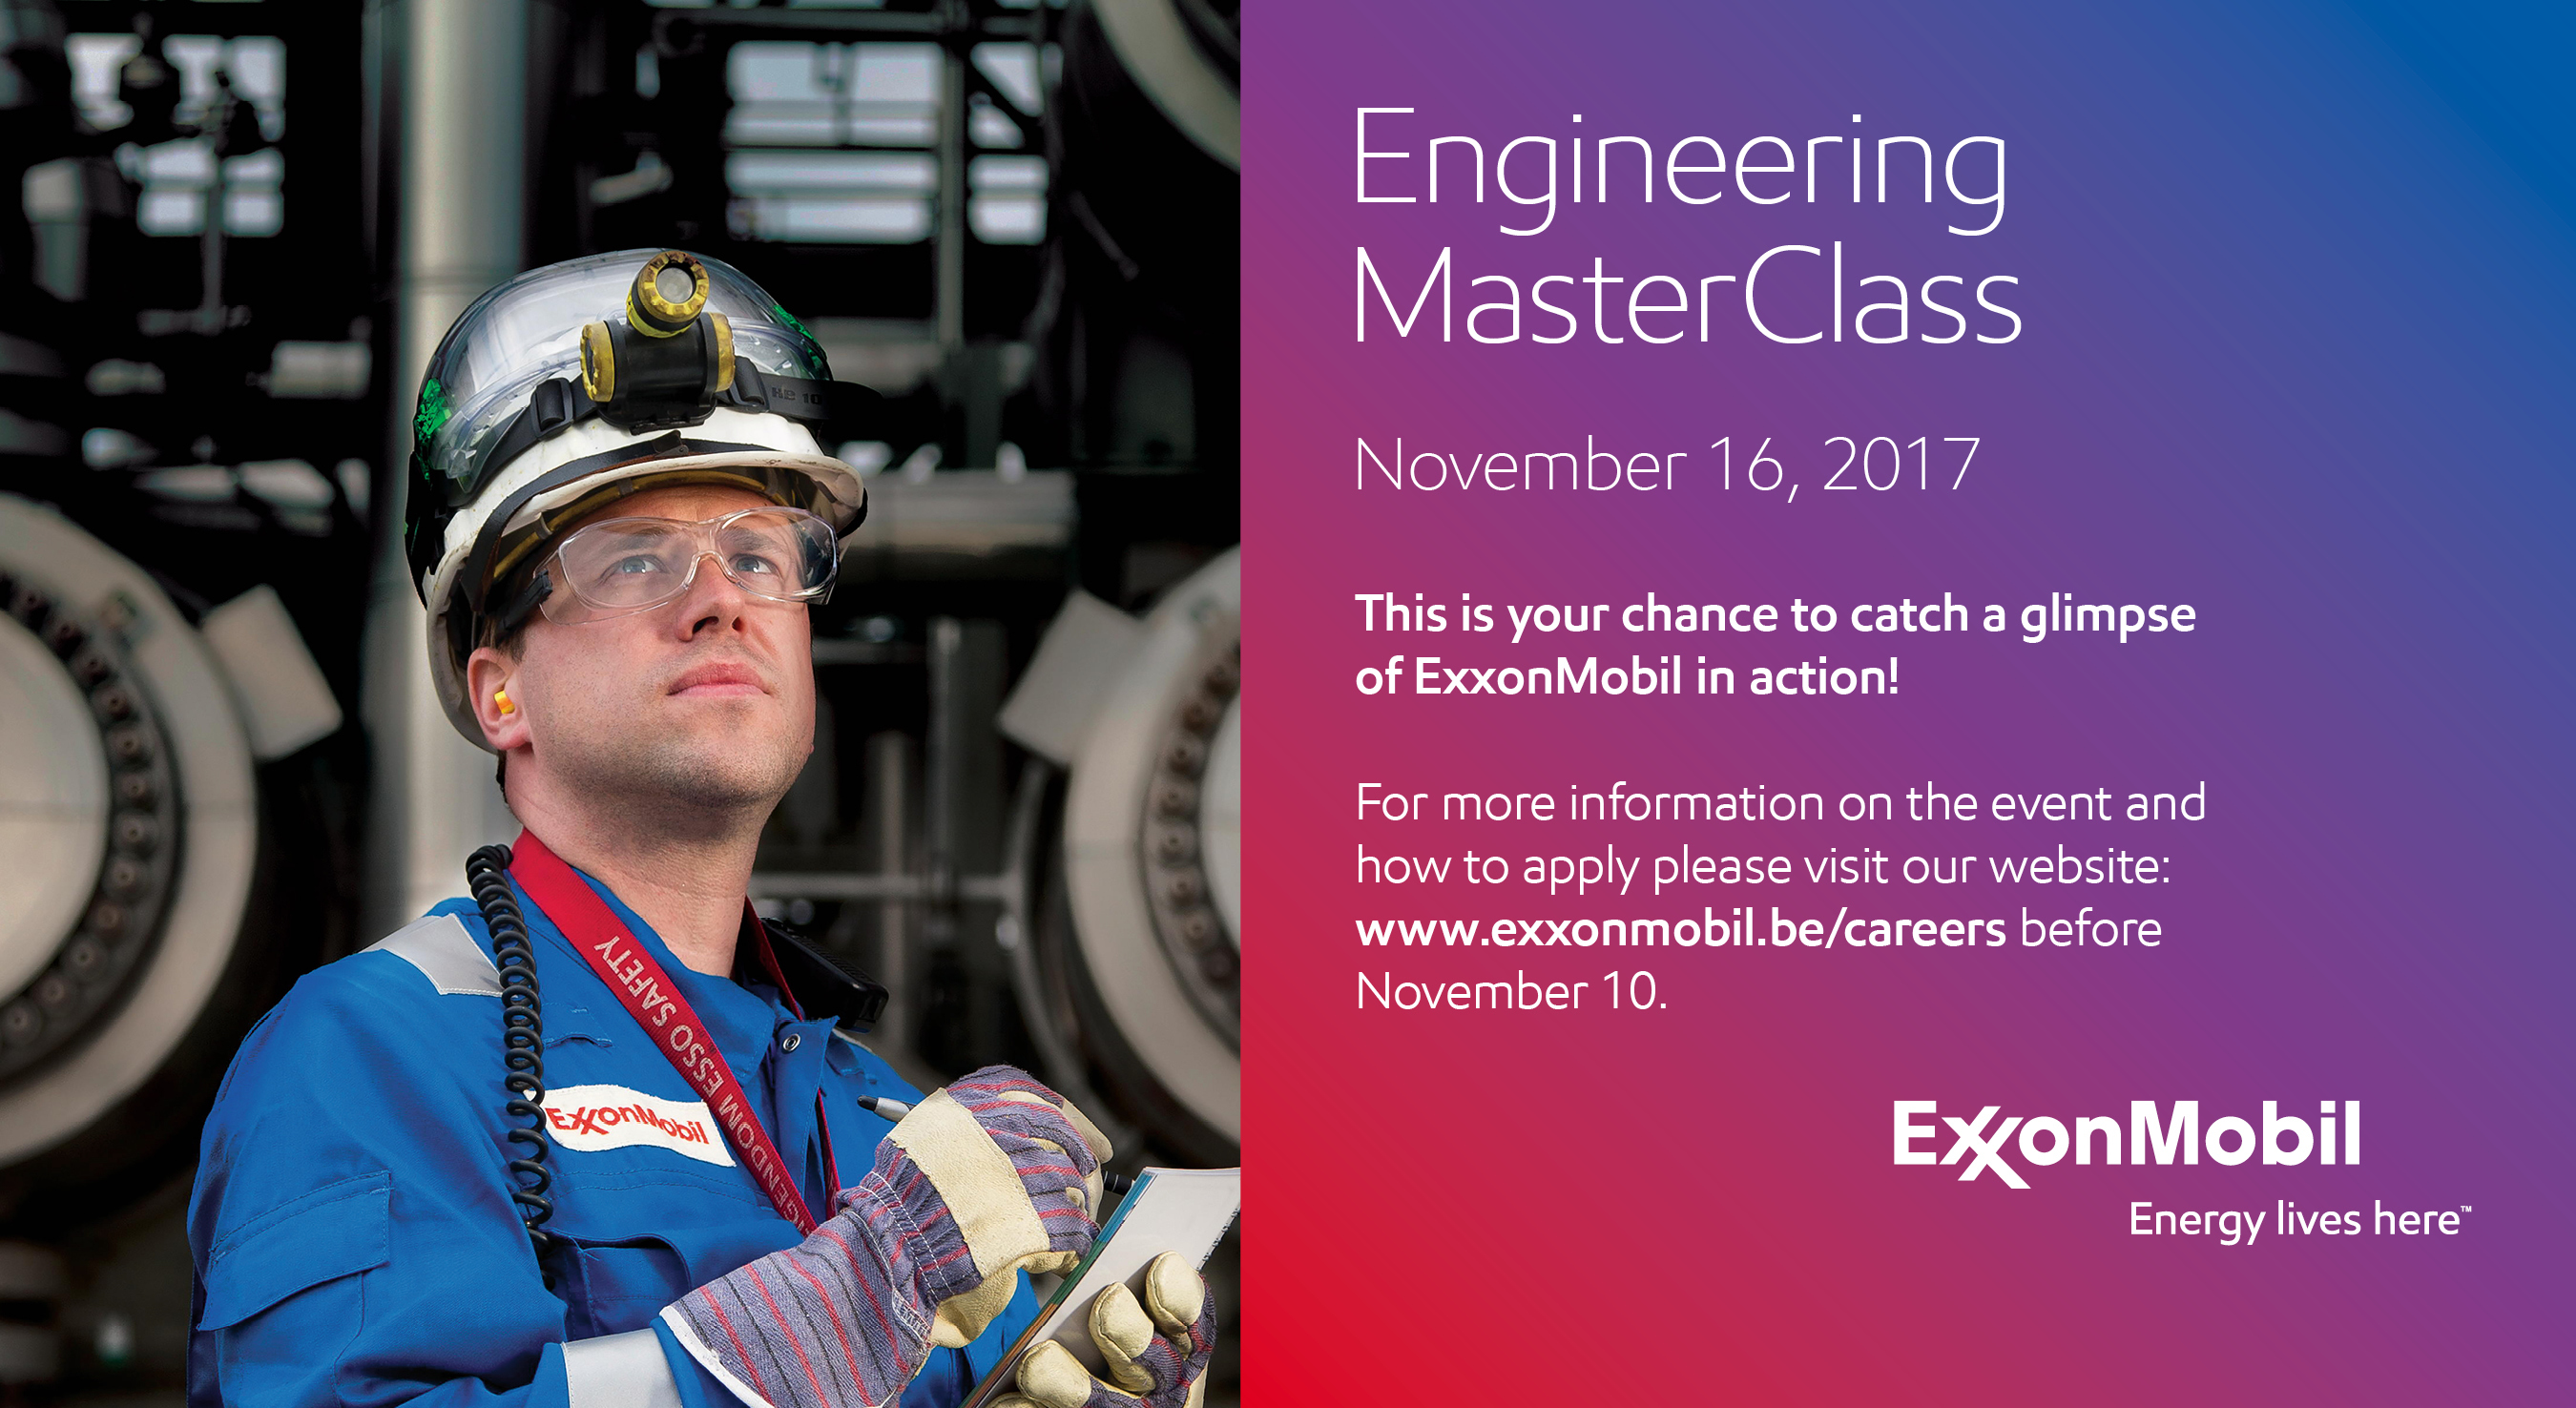 ExxonMobil - Engineering Masterclass